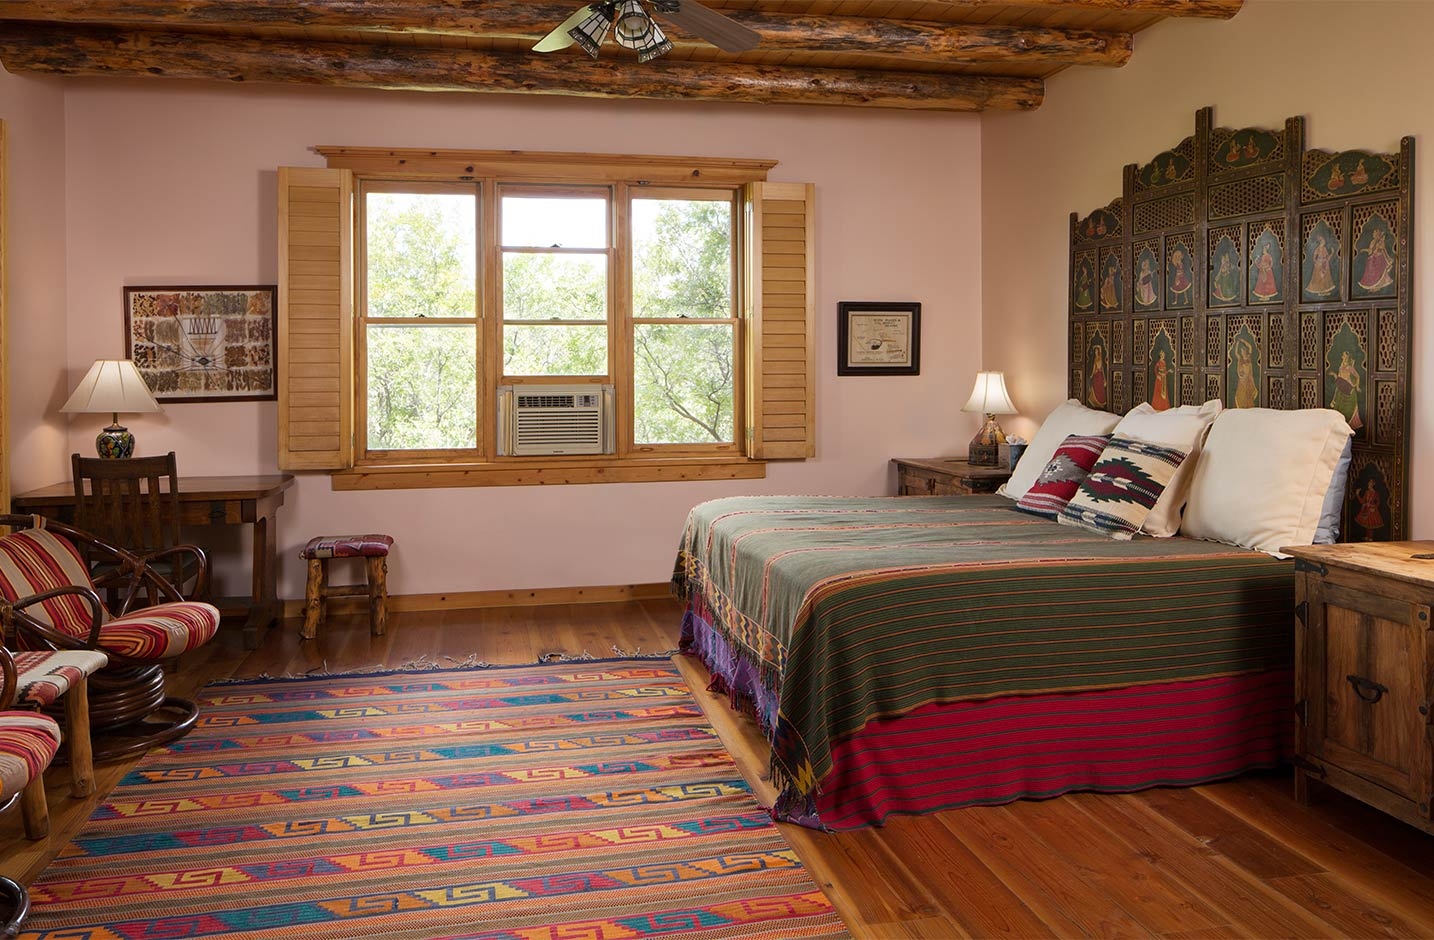 A spacious bedroom with hardwood floors and a king bed and seating area